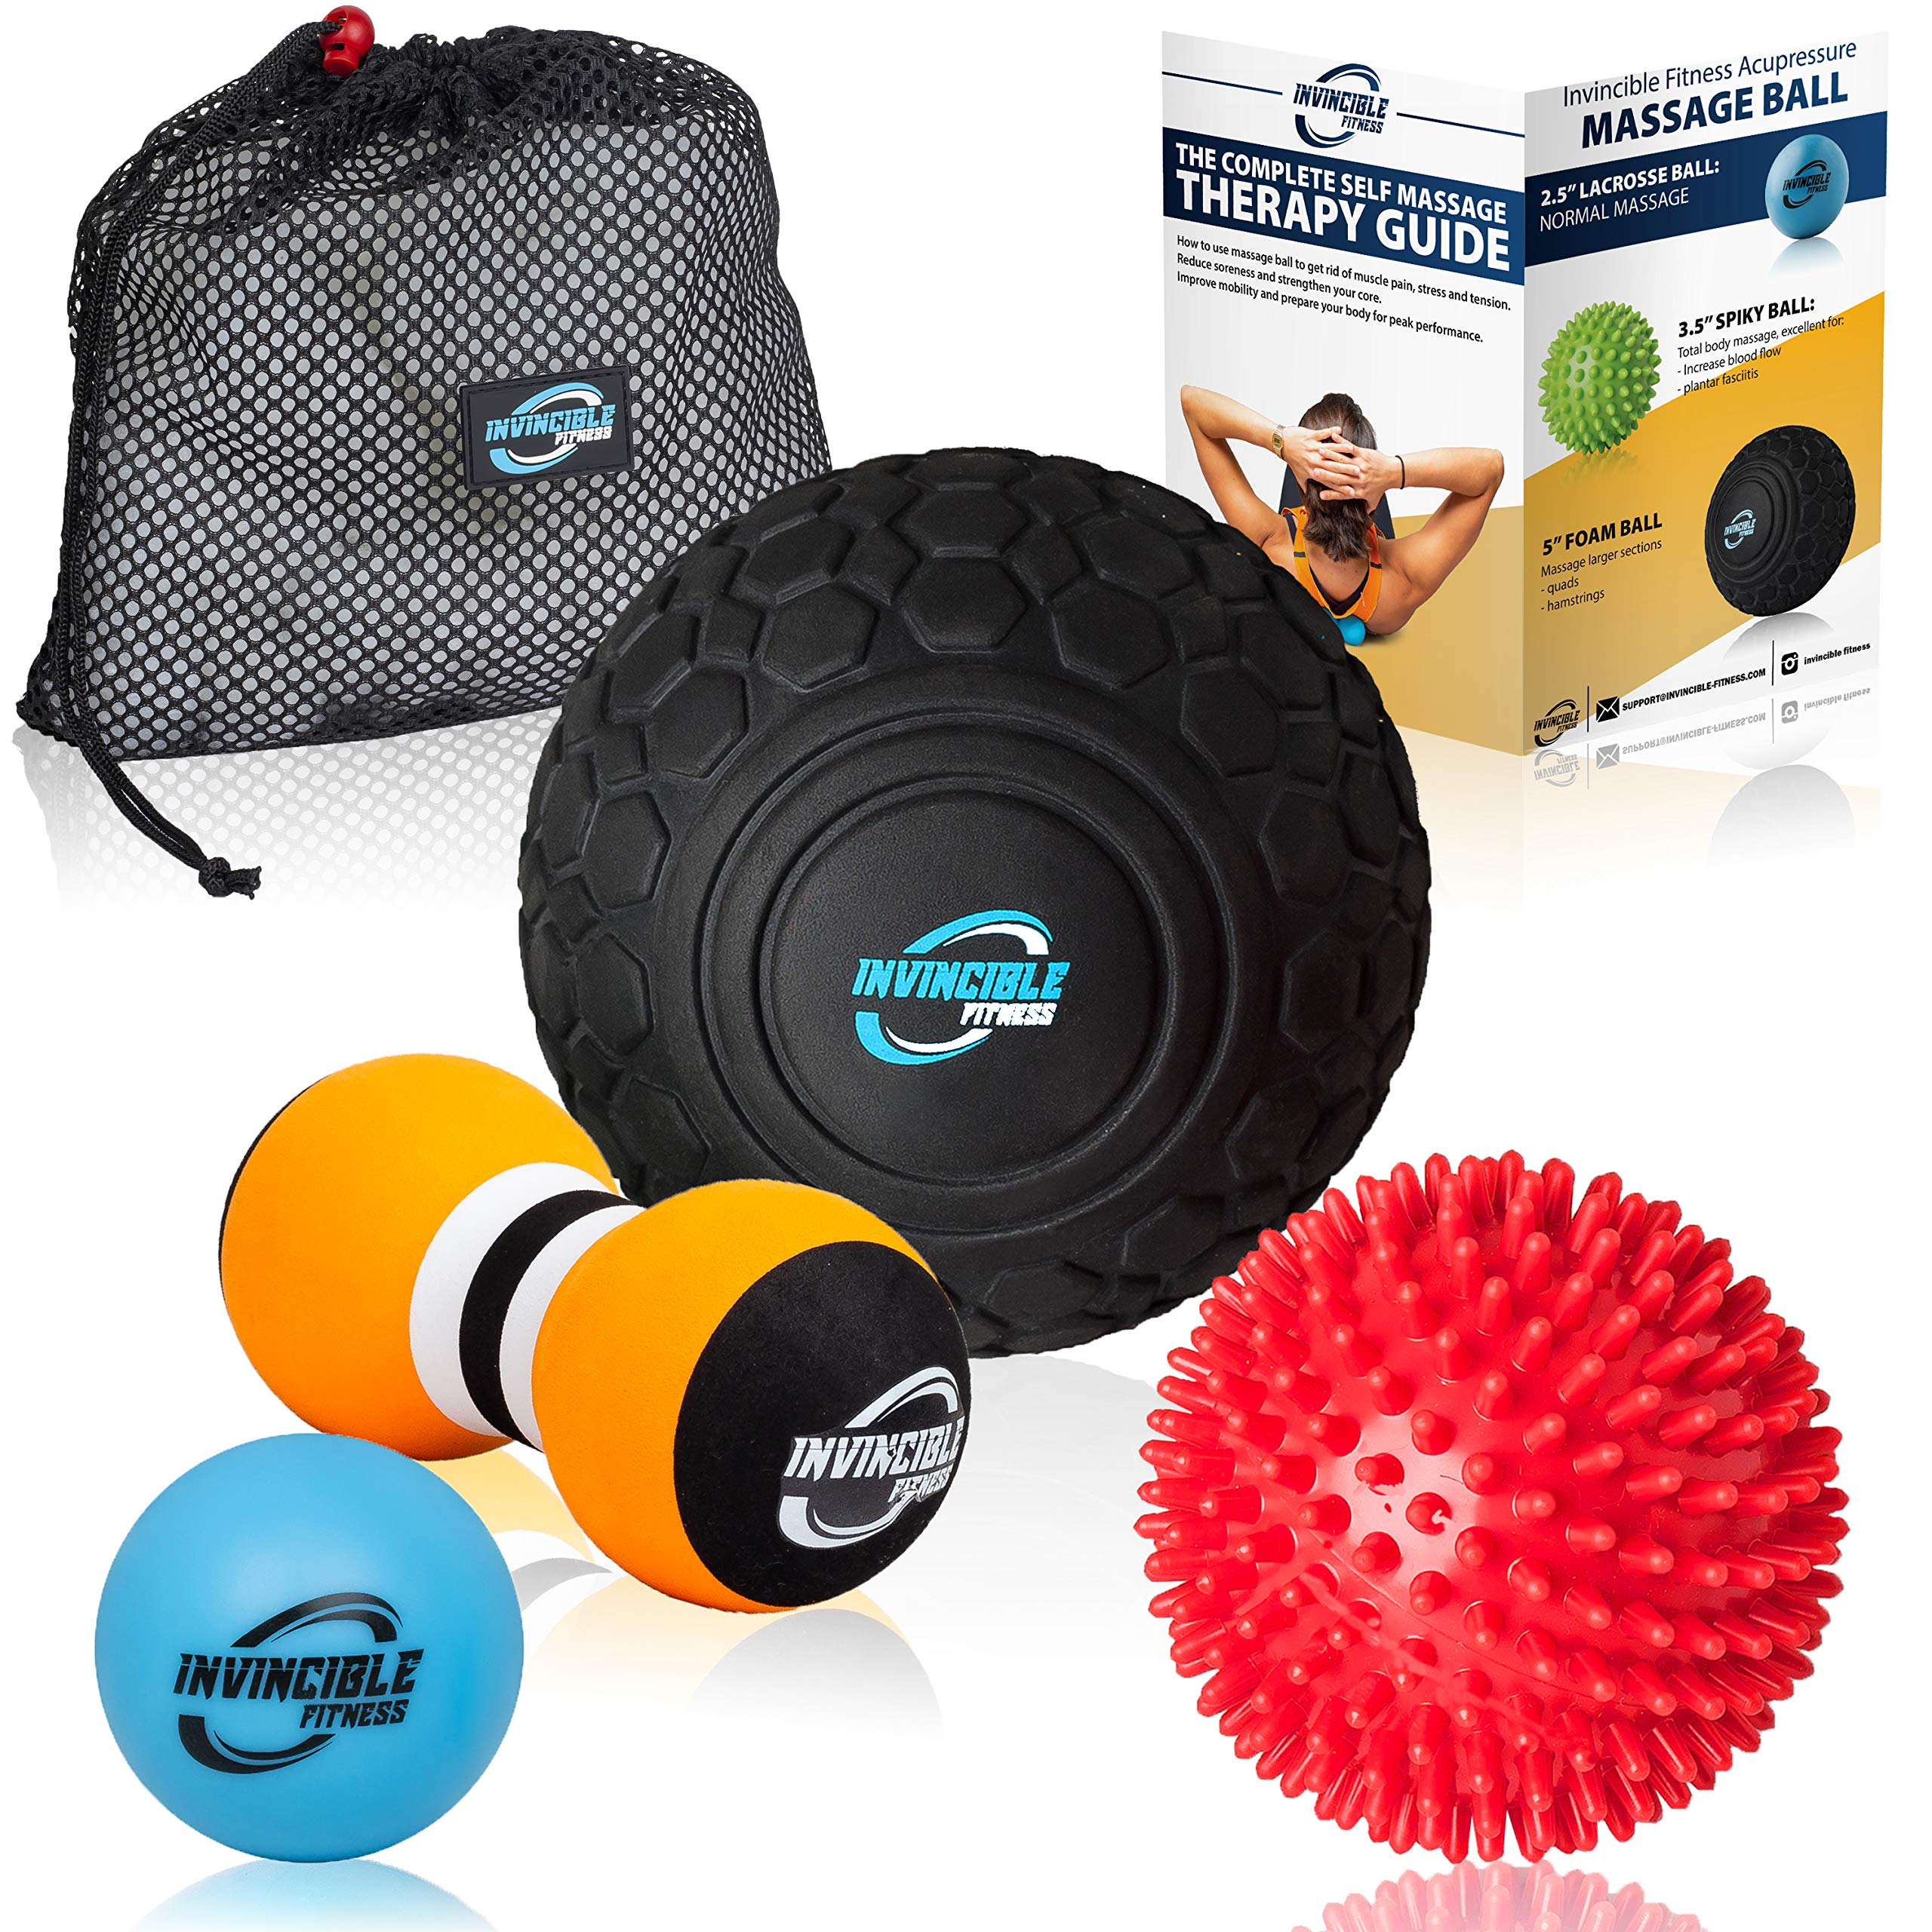 Invincible Fitness Recovery Myofascial Fasciitis